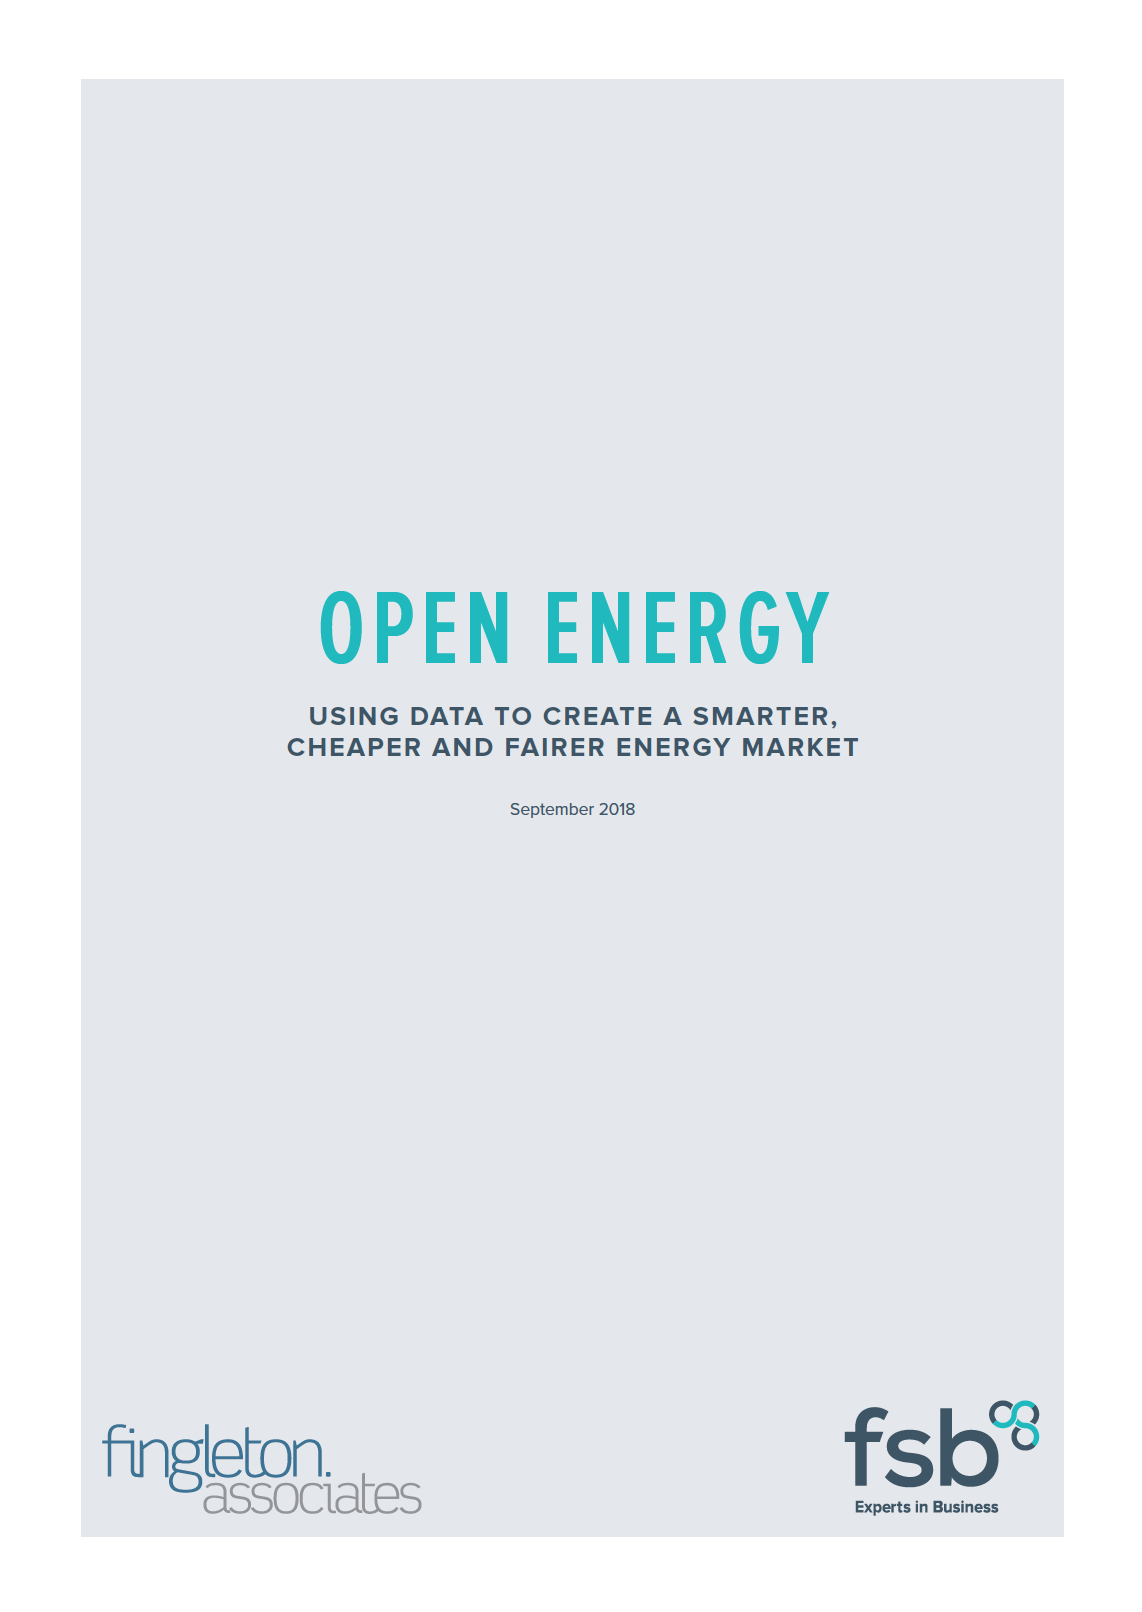 FSB - FA - Open Energy Report Cover